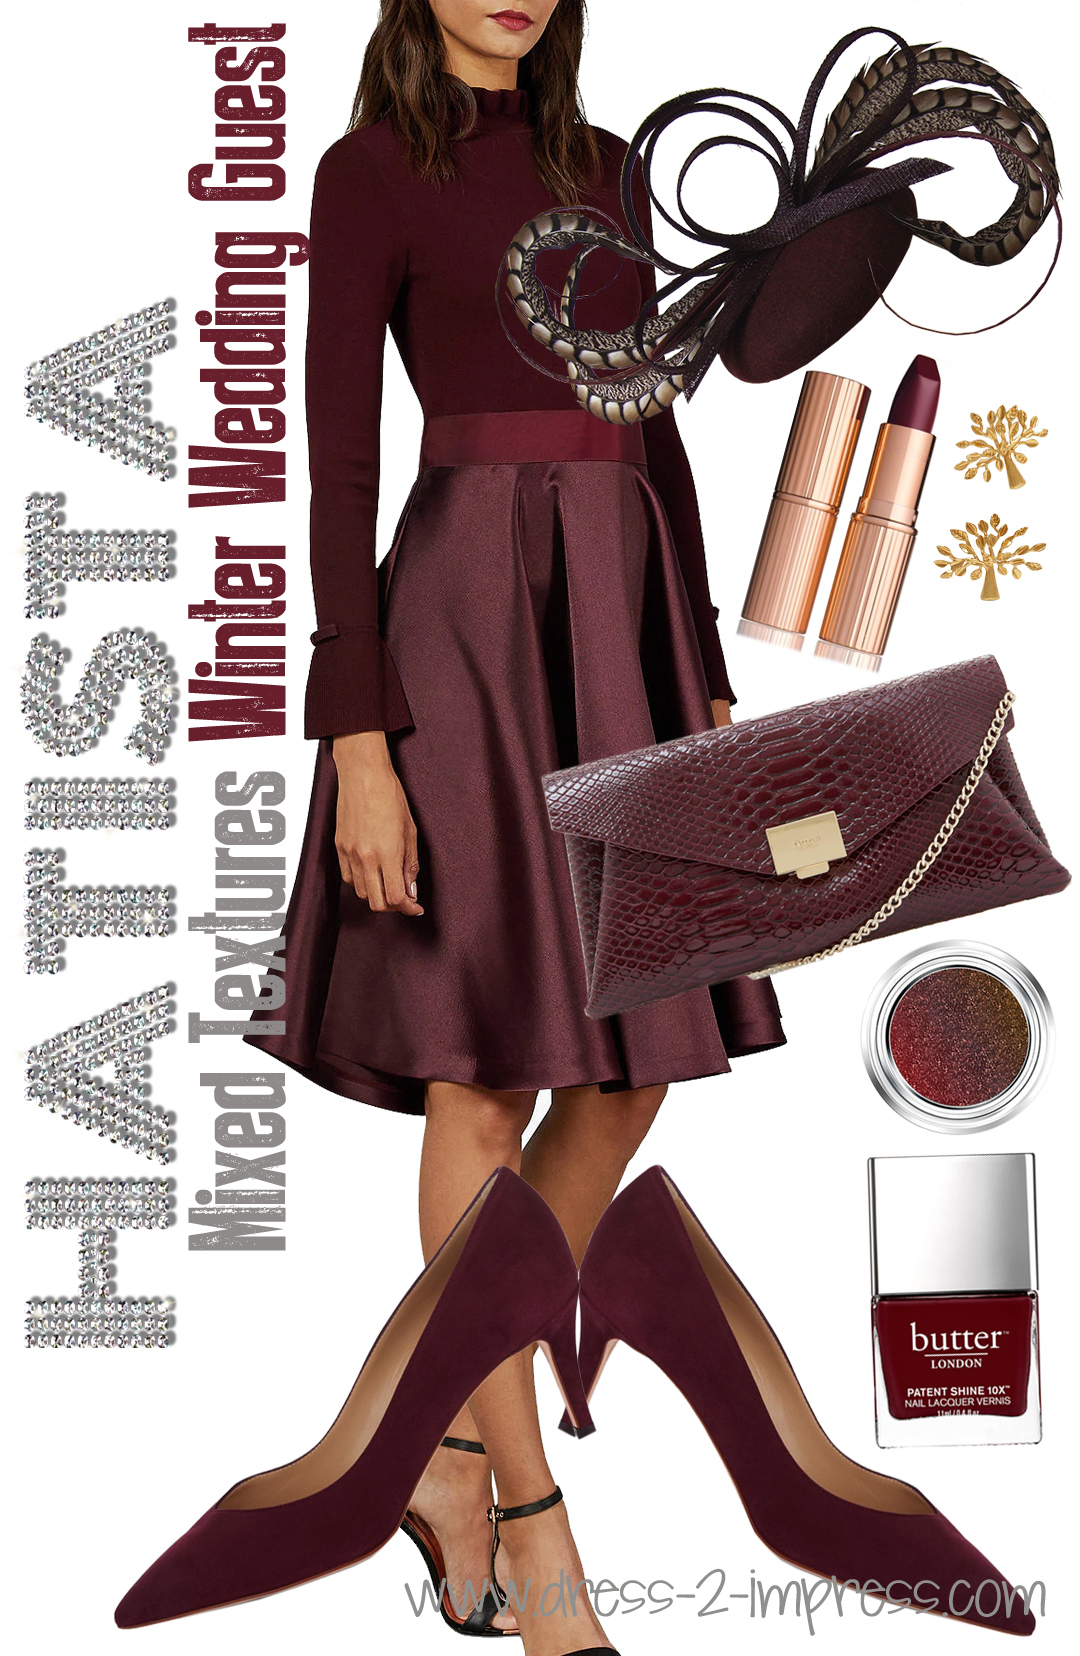 How to dress for a Winter Wedding. Burgundy Winter Outfits. What to wear to a Winter Wedding. Winter Wedding Guests outfits. How to dress for a winter wedding. How to wear Burgundy Red. What to wear with Burgundy. What colours go with Burgundy.